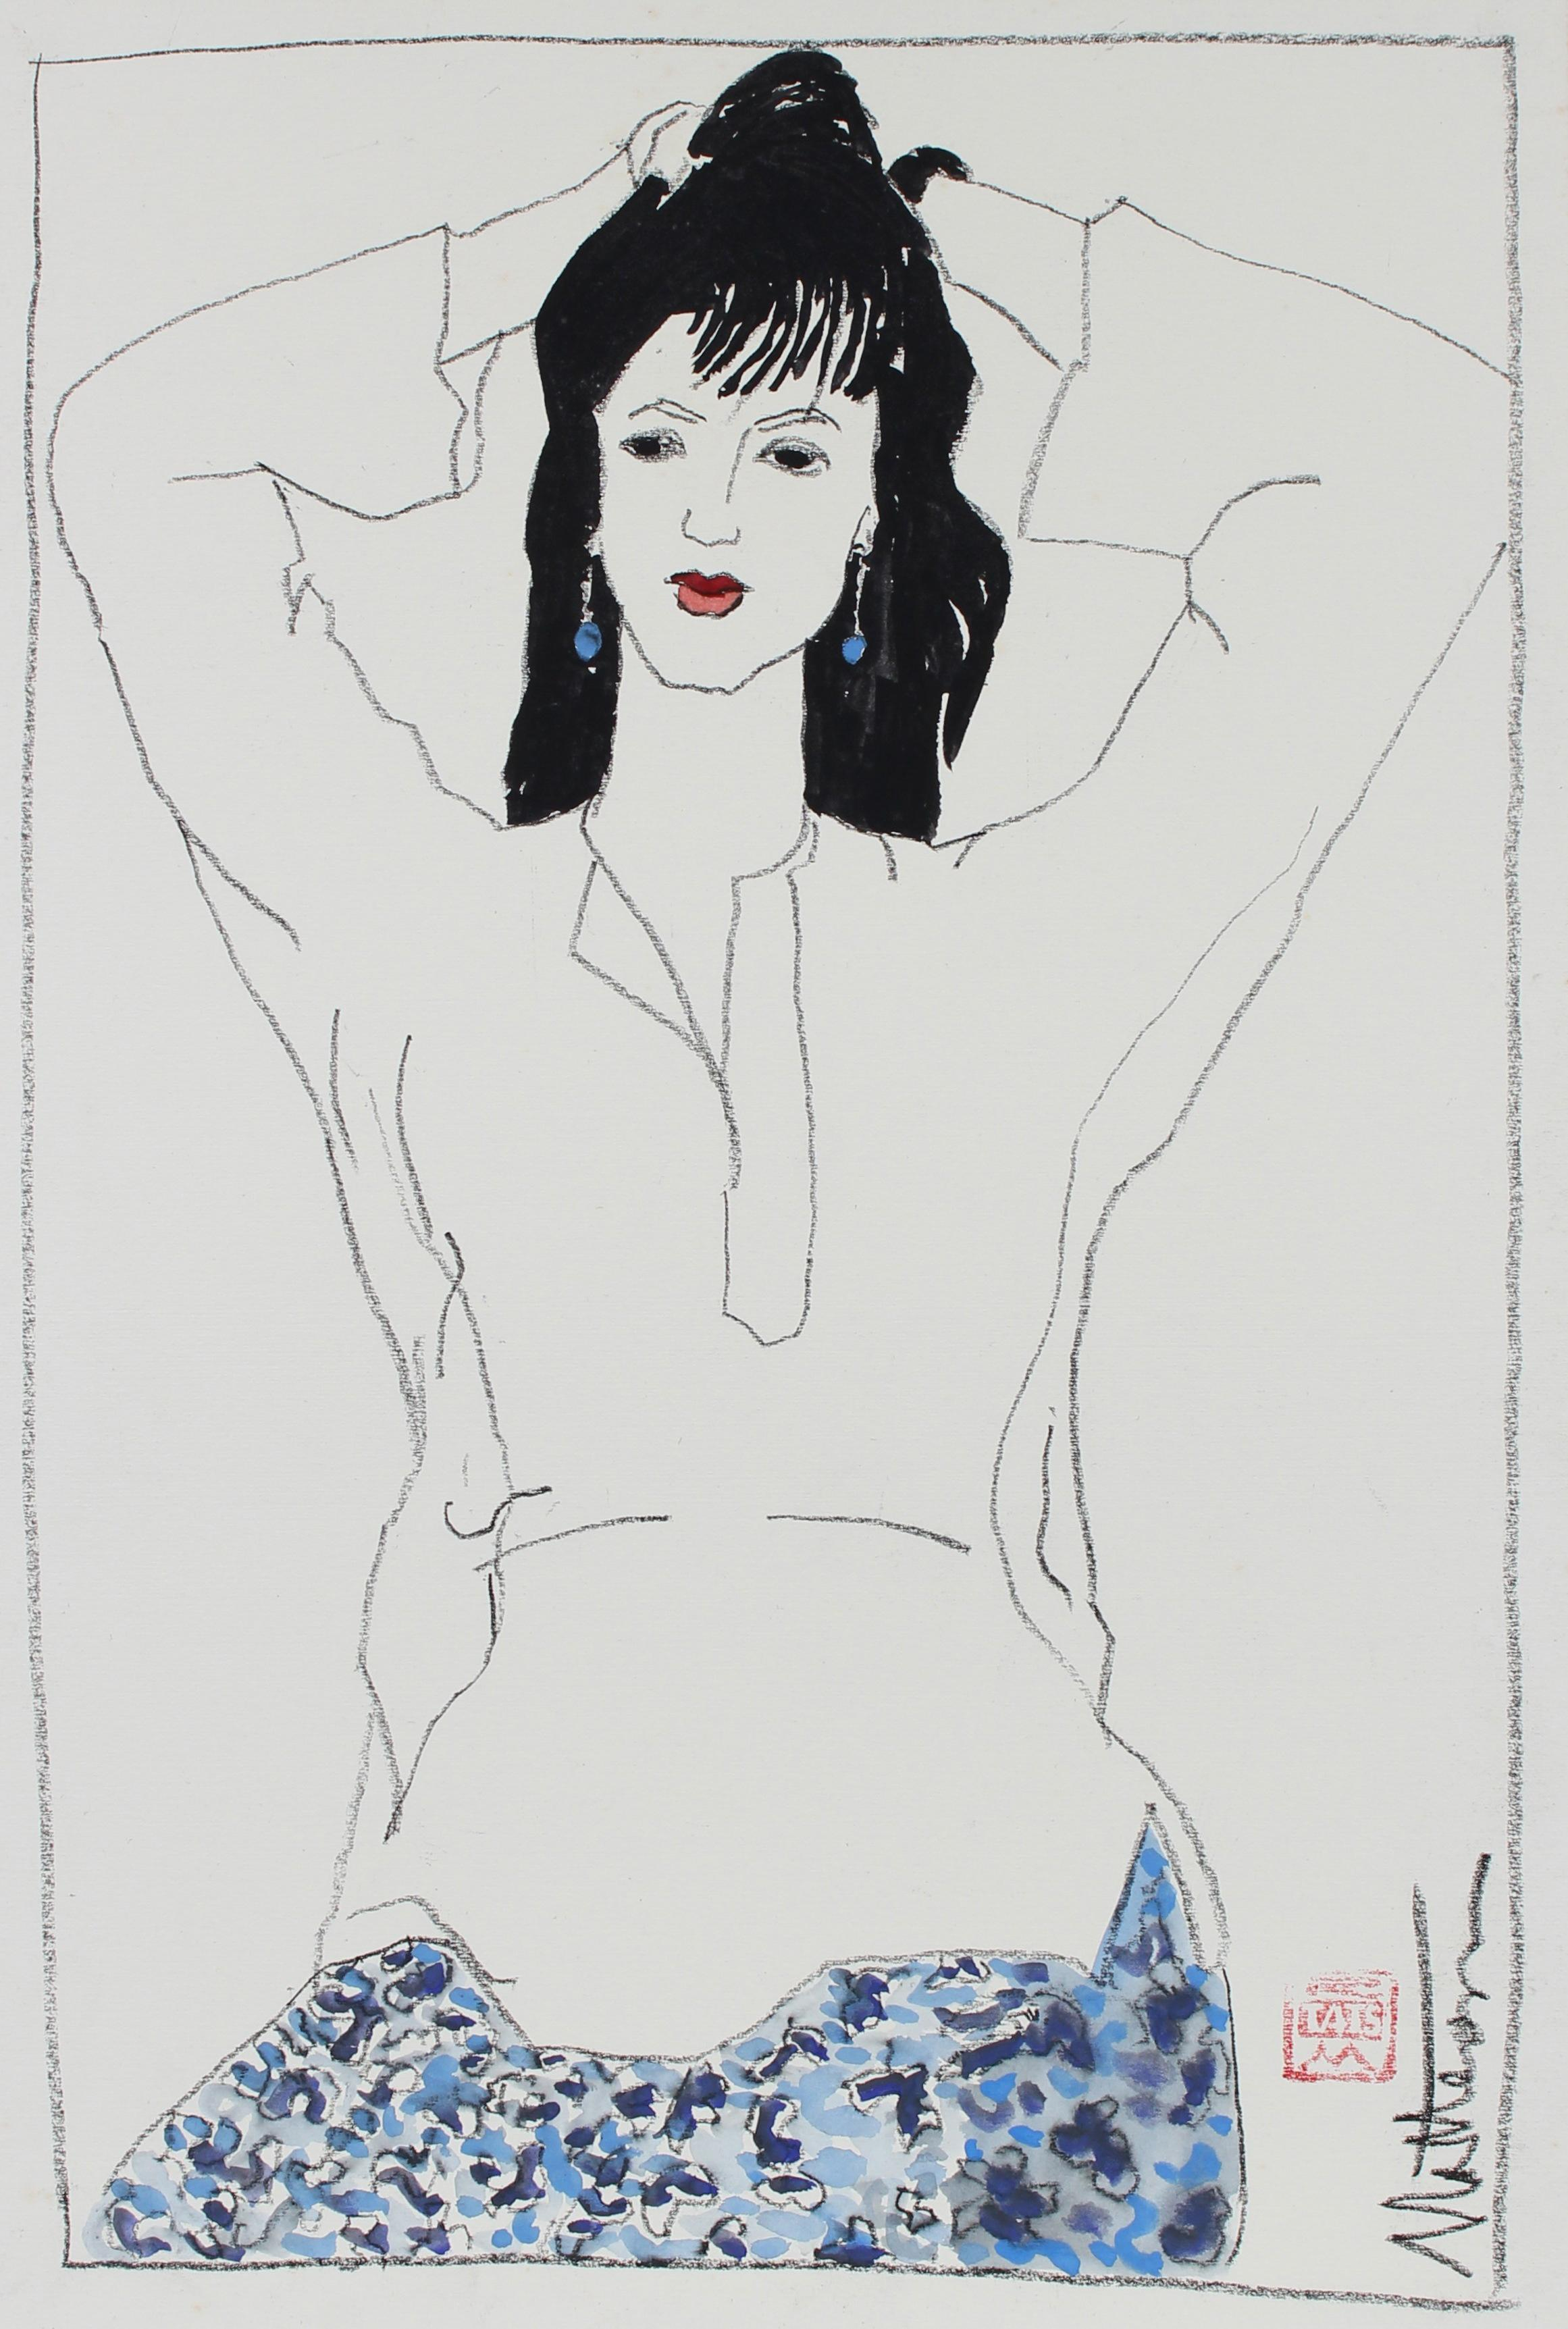 Female Figure in Blue Blue With Red Lipstick, Charcoal & Gouache Painting, 1999